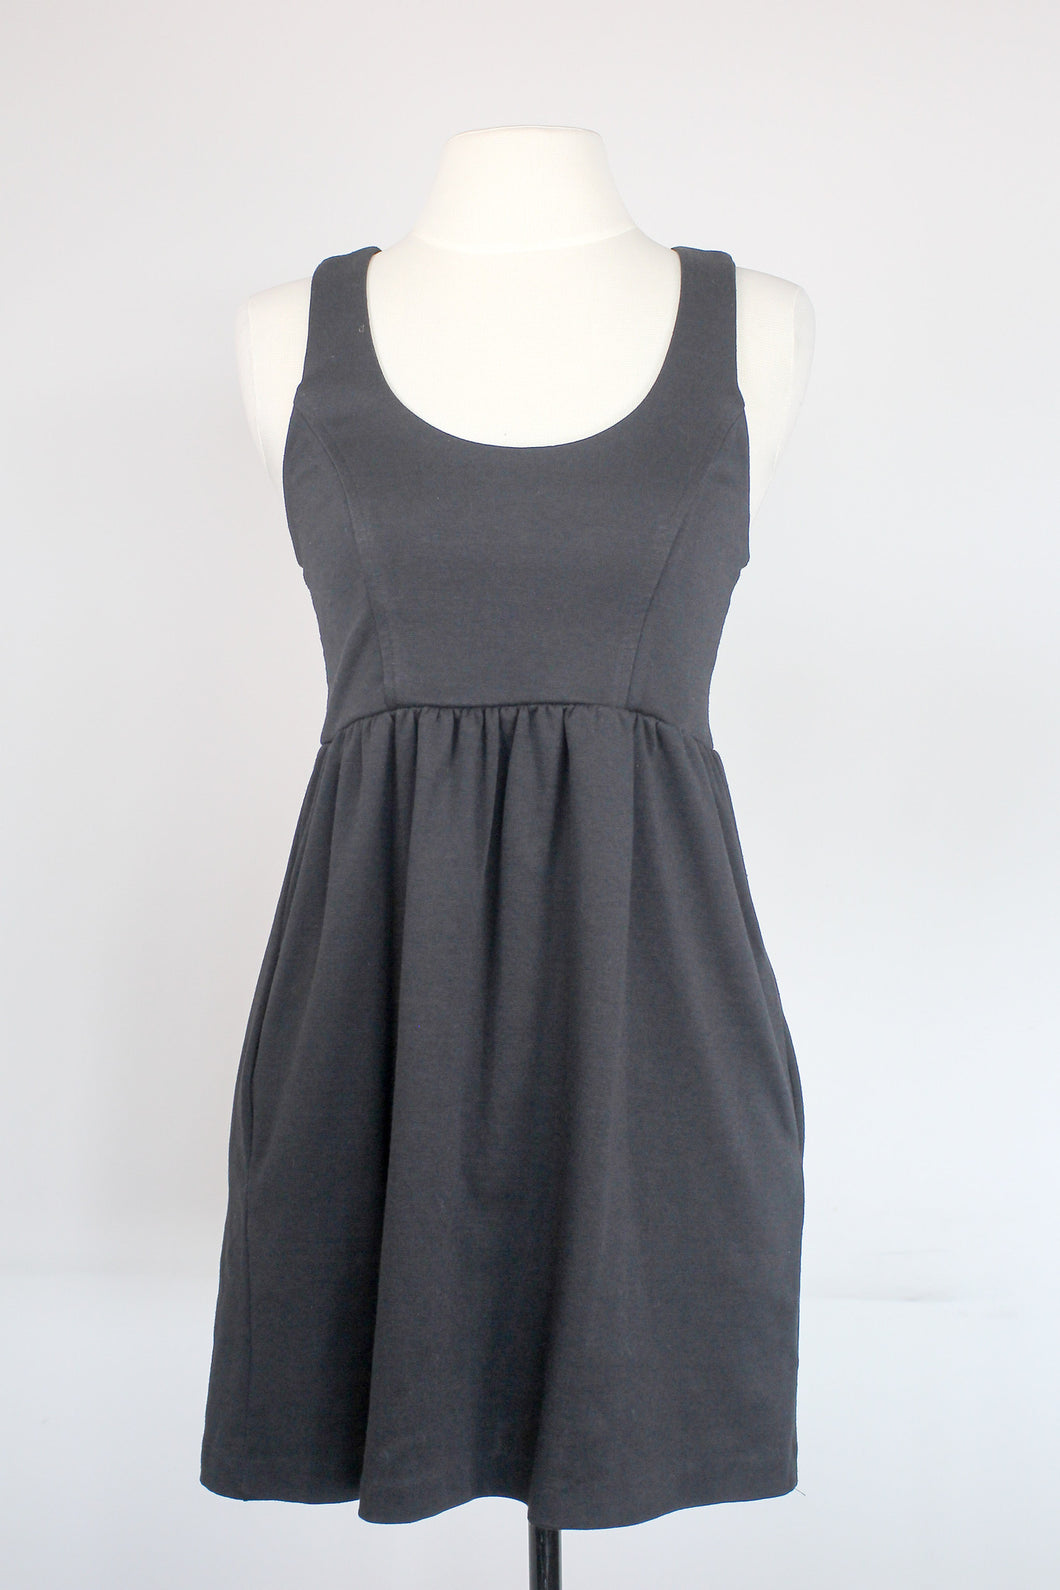 silence + noise Black Dress